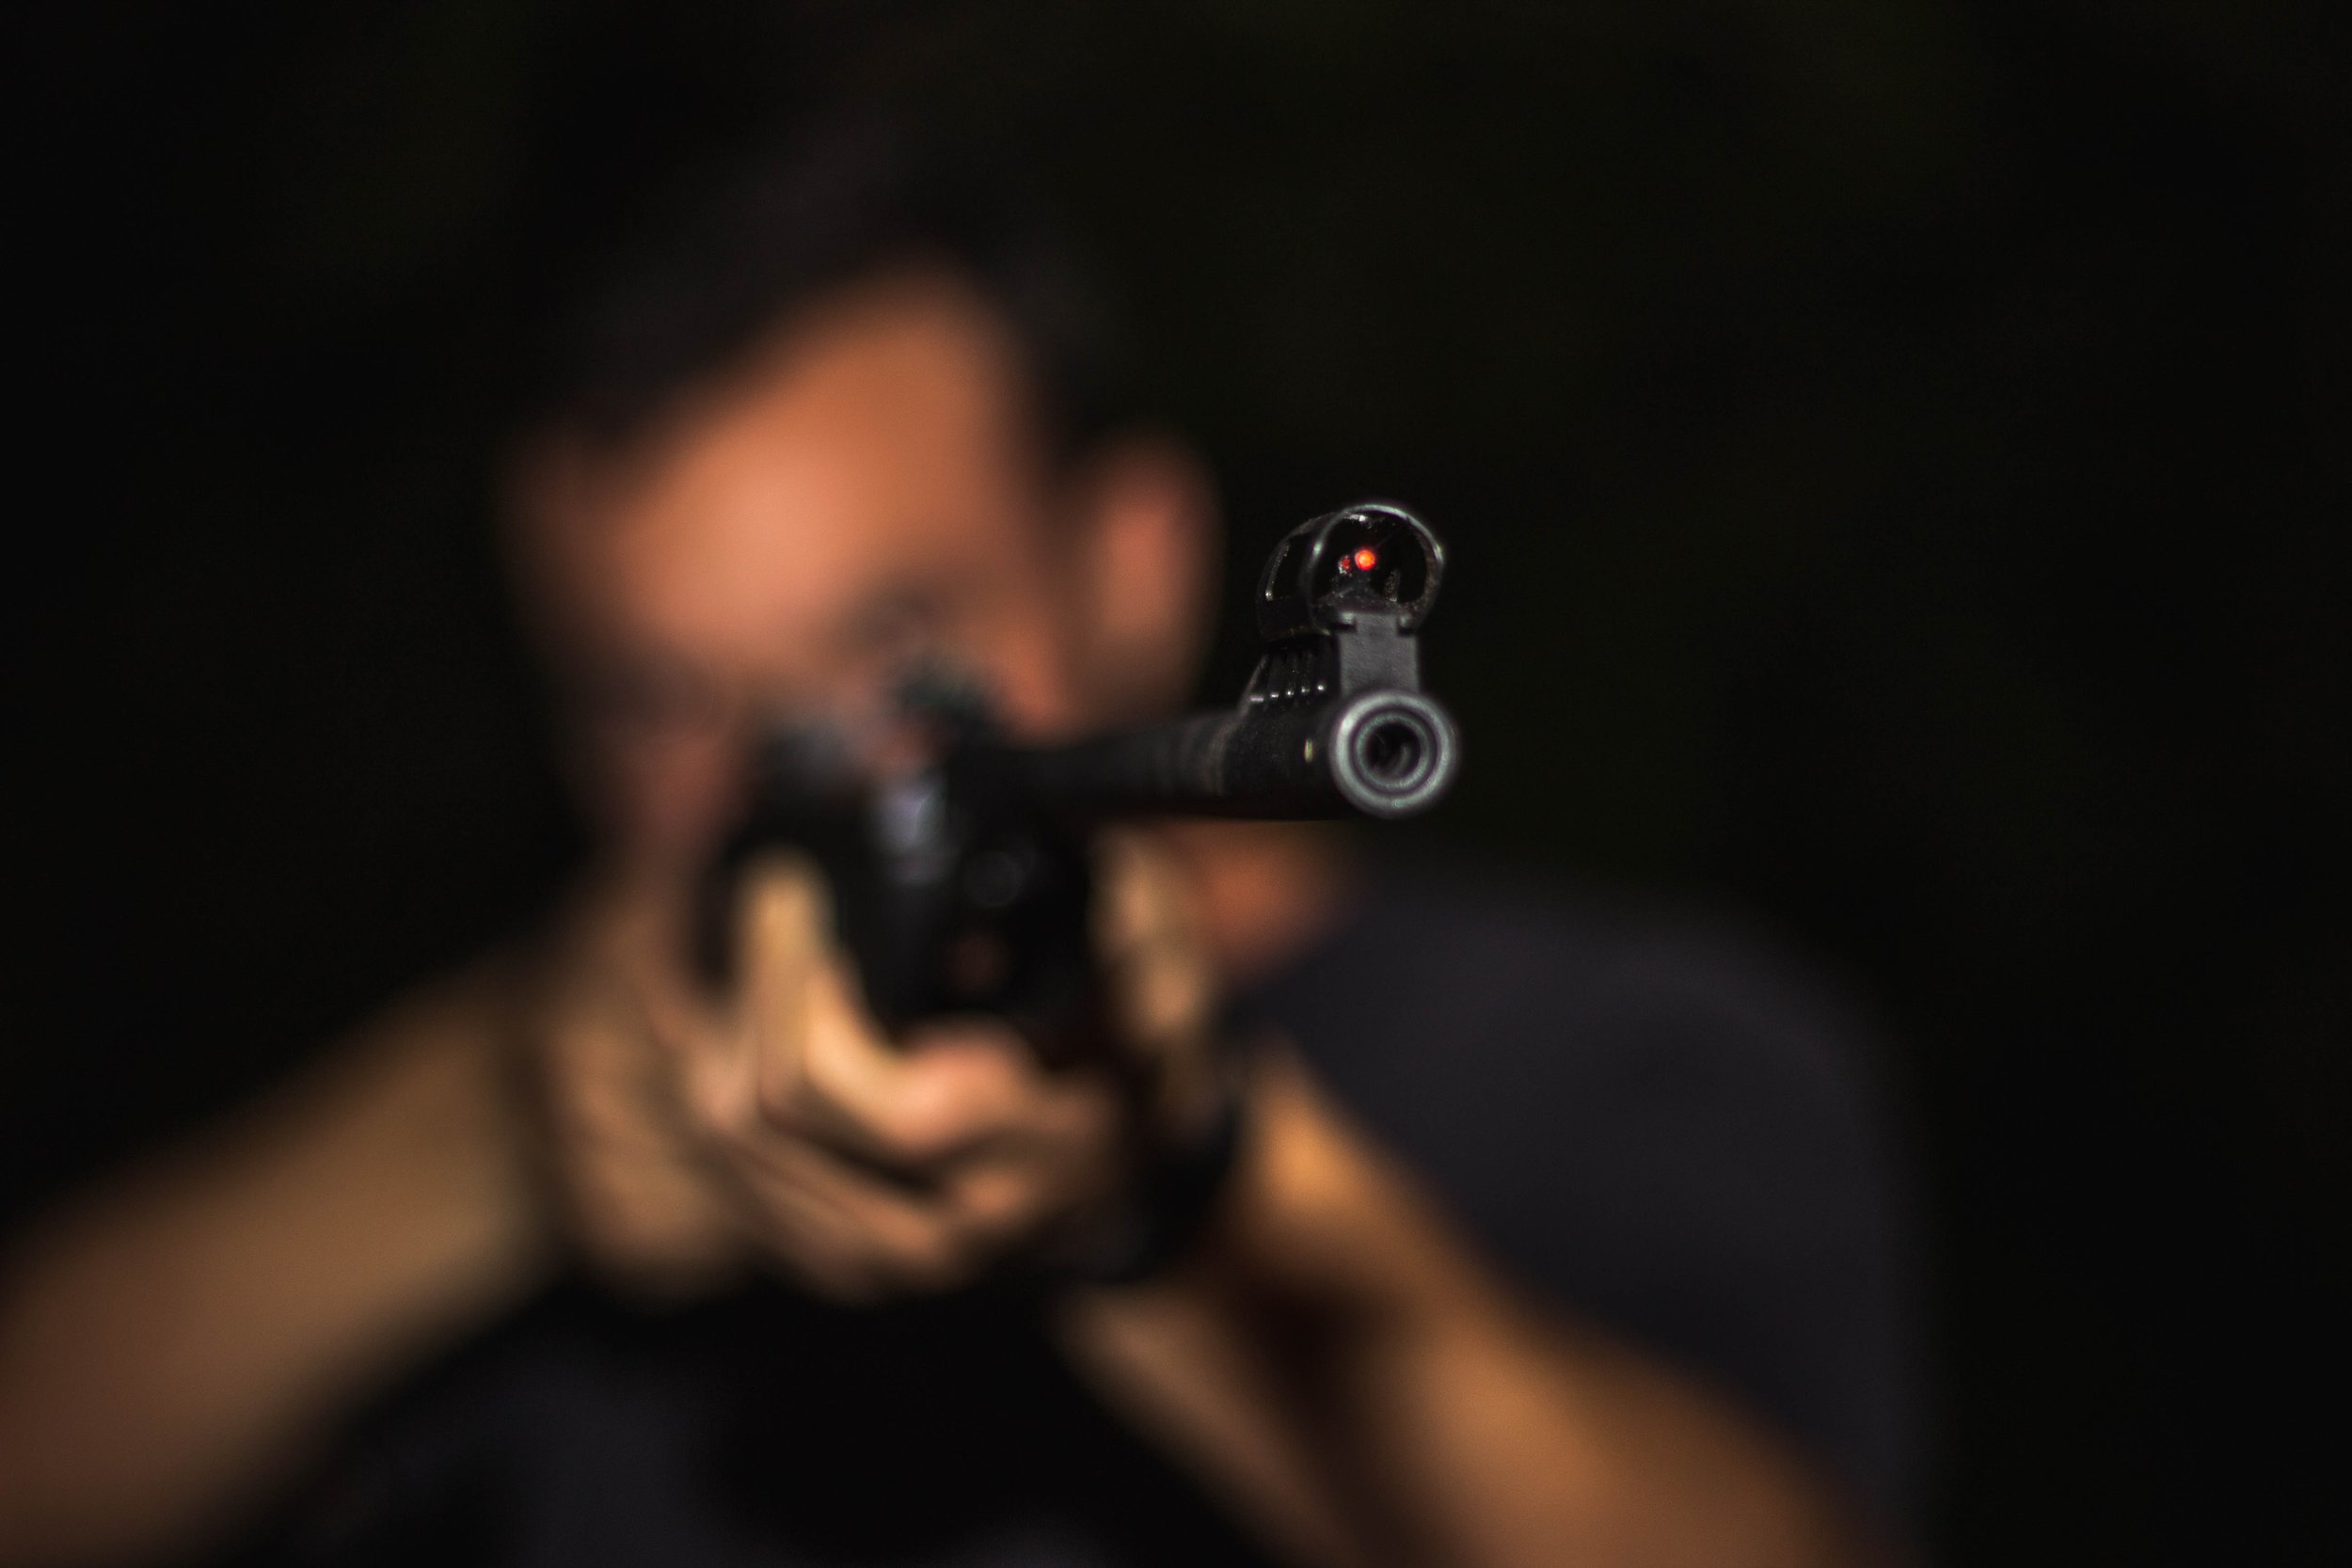 assault-rifle-blur-close-up-1592109.jpg